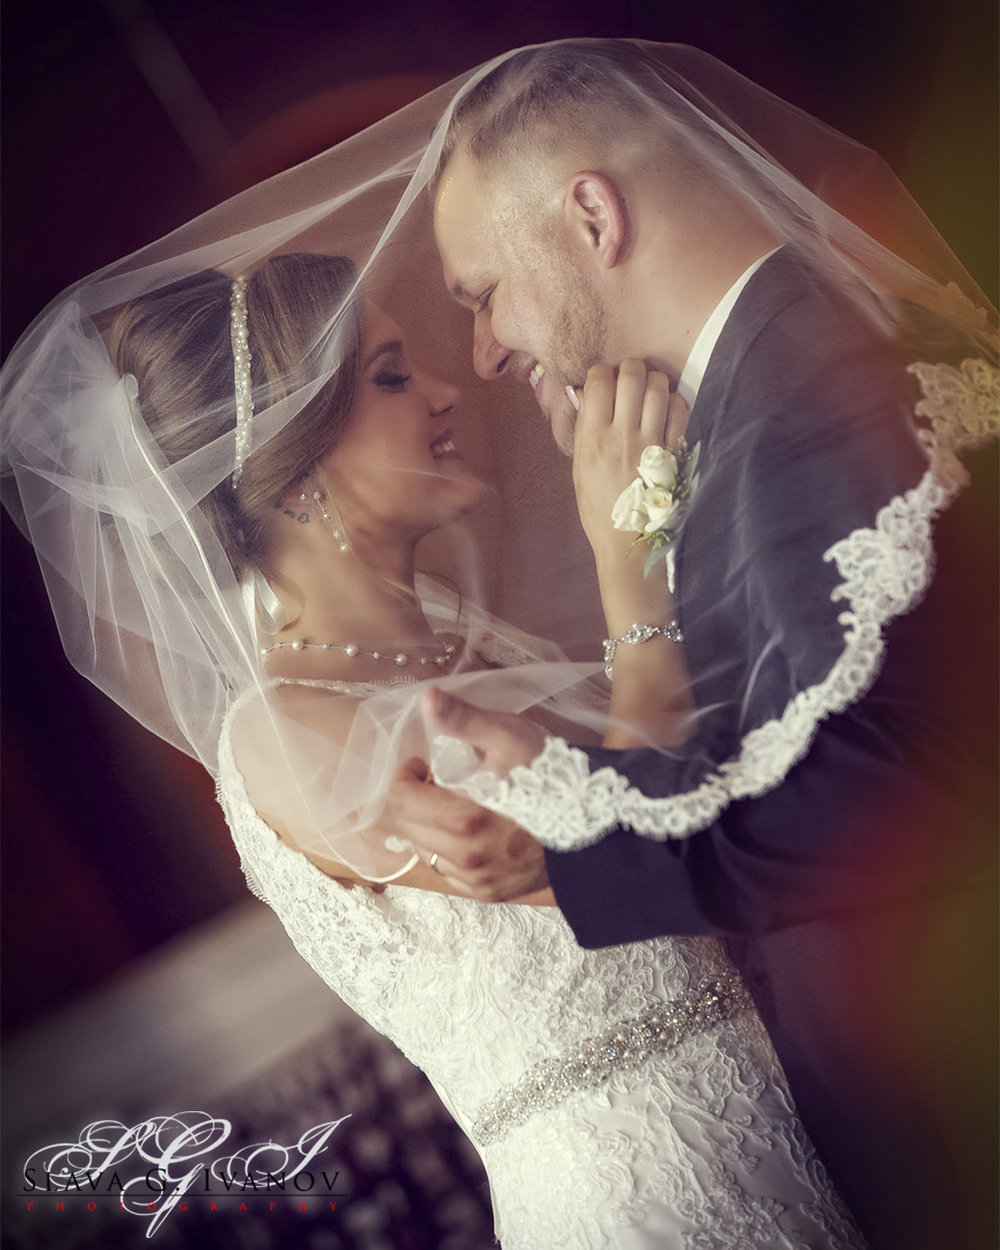 Bride and Groom Embraced under Veil in Candela.jpg